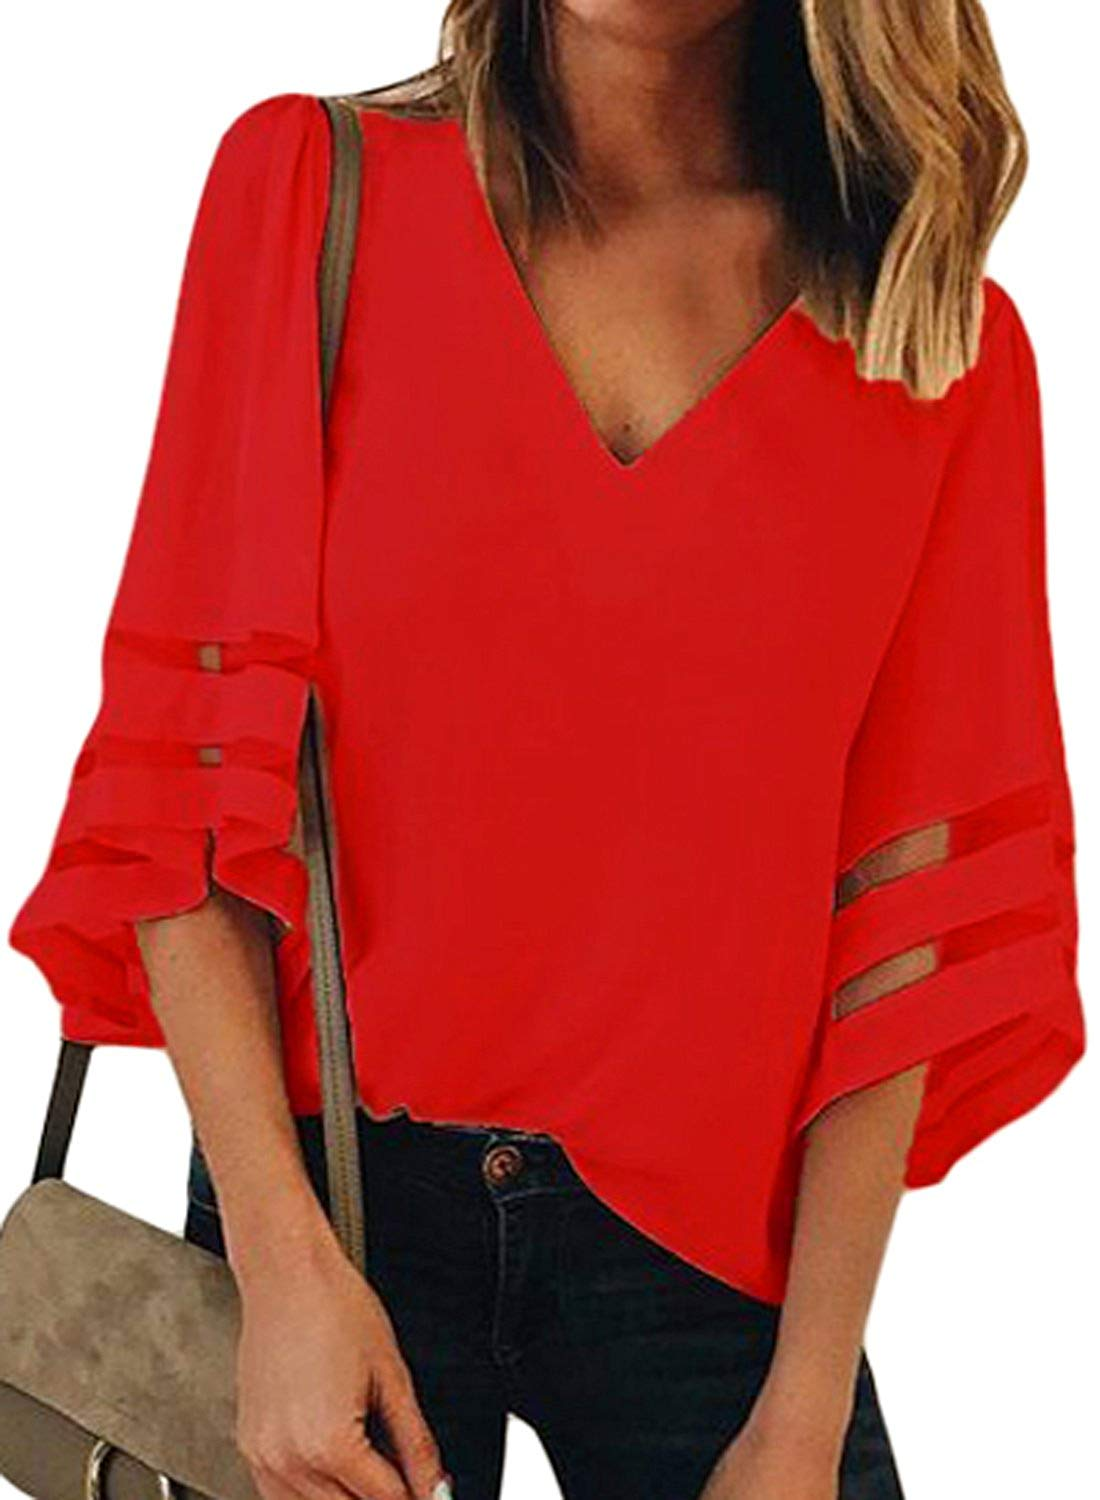 CILKOO Womens V Neck 3/4 Bell Sleeve Lace Patchwork Chiffon Blouse Tops(S-XXL)